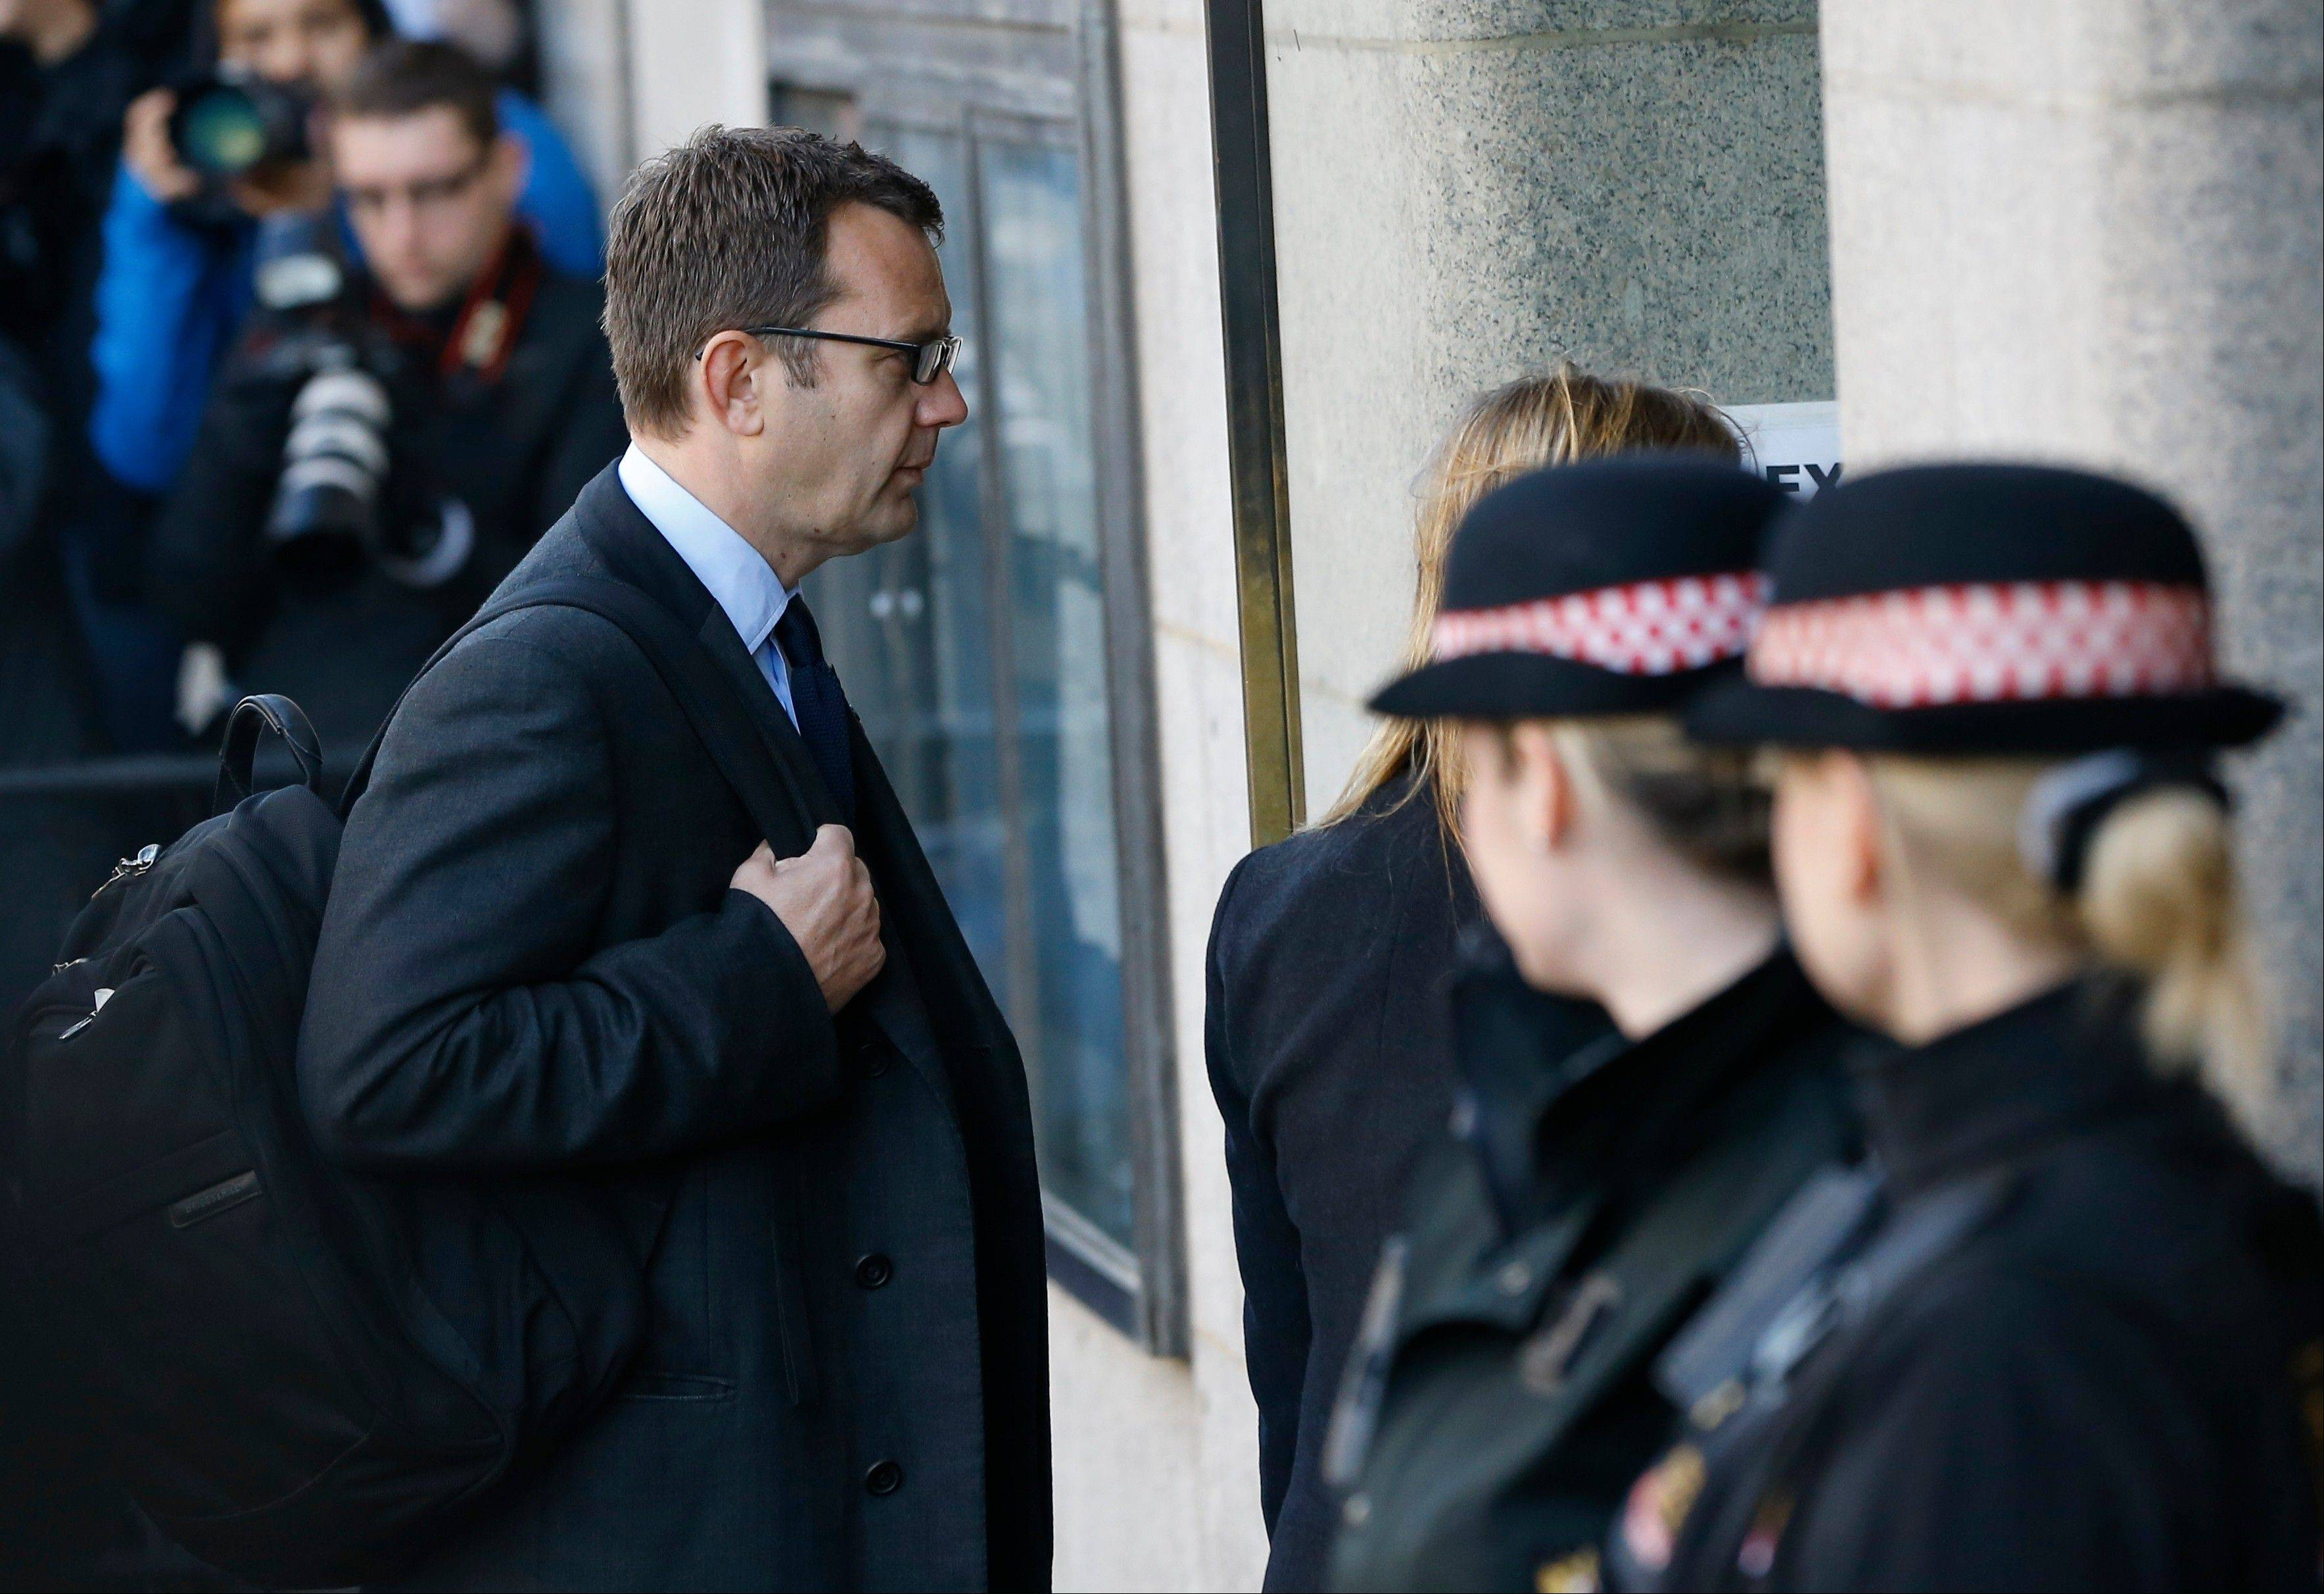 Andy Coulson is watched by police officers as he arrives at The Old Bailey law court in London, Monday. Former News of the World editors Rebekah Brooks and Coulson are due to go on trial Monday, along with several others, on charges of hacking phones and bribing officials while at the now-shuttered Murdoch tabloid.